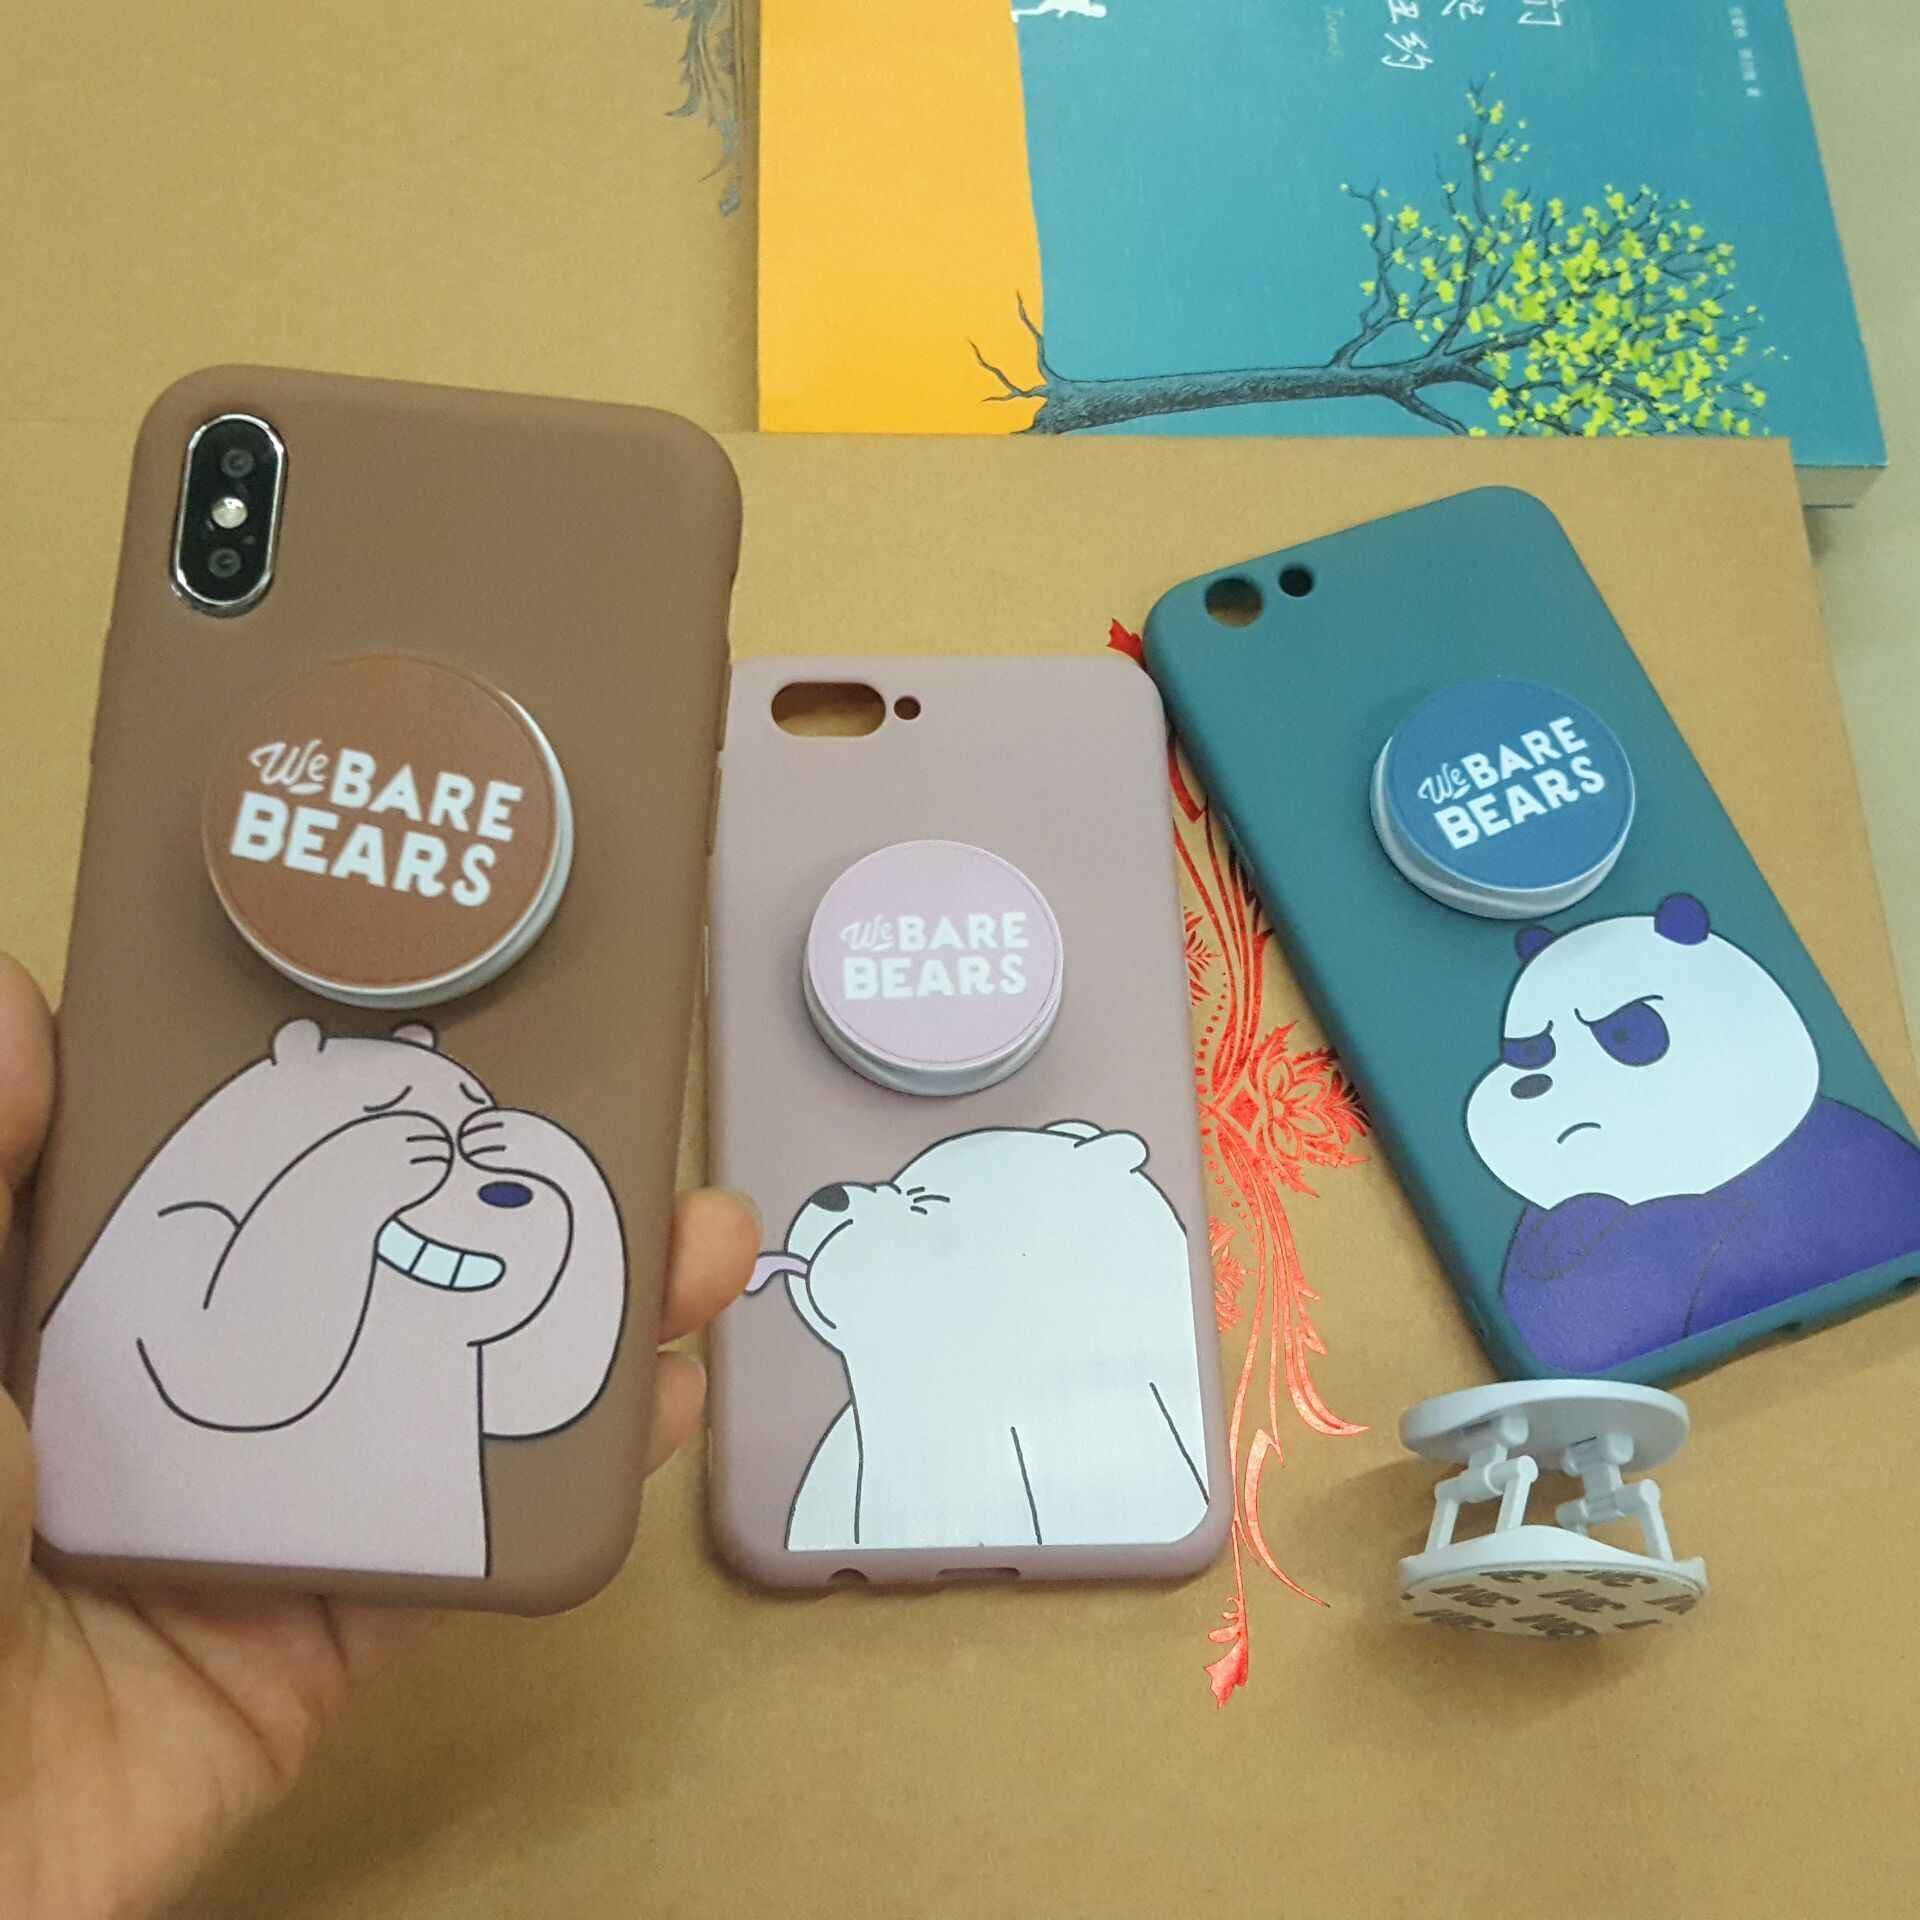 Bare Bears Lquid Soft Silicone Case for Huawei Honor 10 8X 9 Play Mate 9 10 20 Pro Fundas Cartoon Cover Phone Cases WIth Bracket